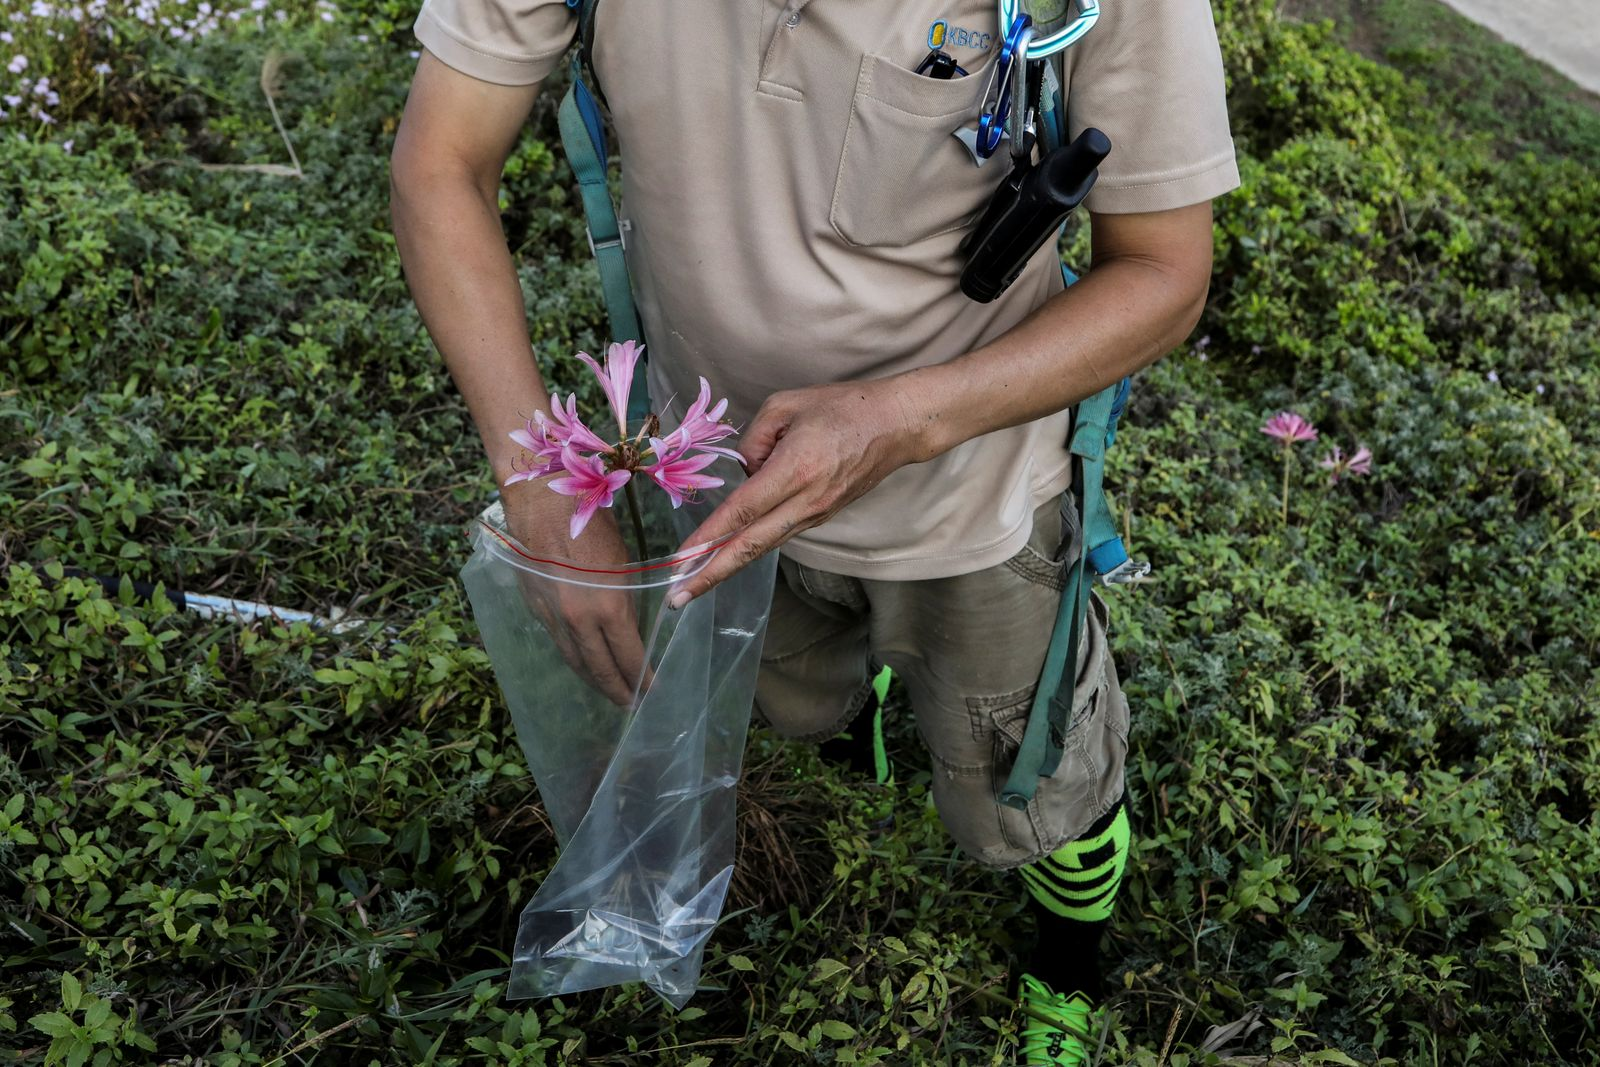 The Wider Image: Taiwan plant hunters race to collect rare species before they are gone